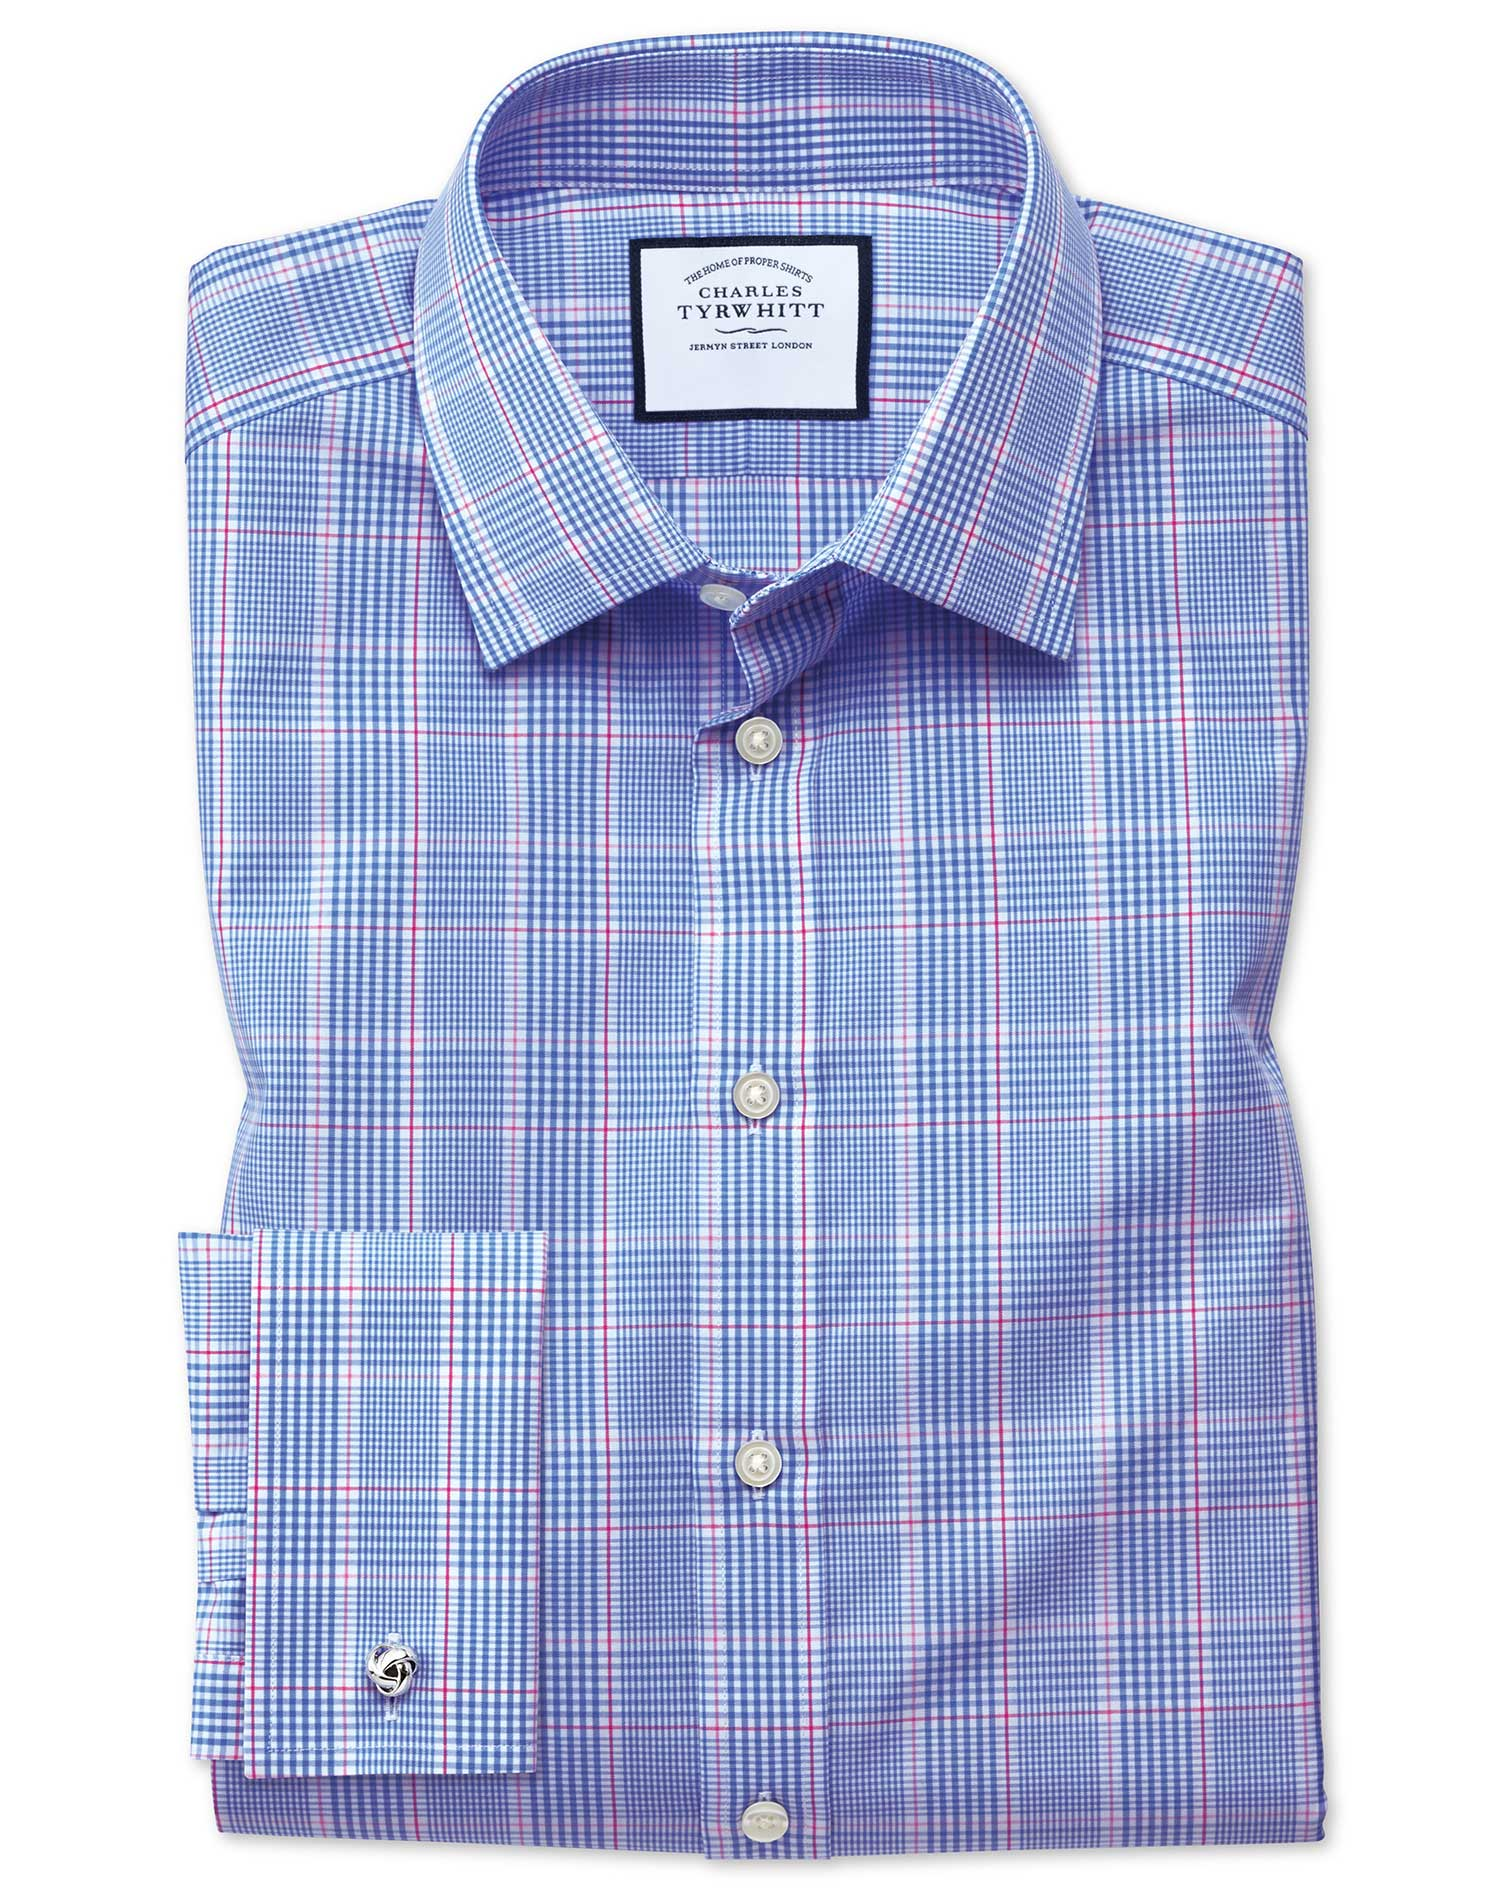 Extra Slim Fit Prince Of Wales Blue Cotton Formal Shirt Single Cuff Size 16.5/33 by Charles Tyrwhitt